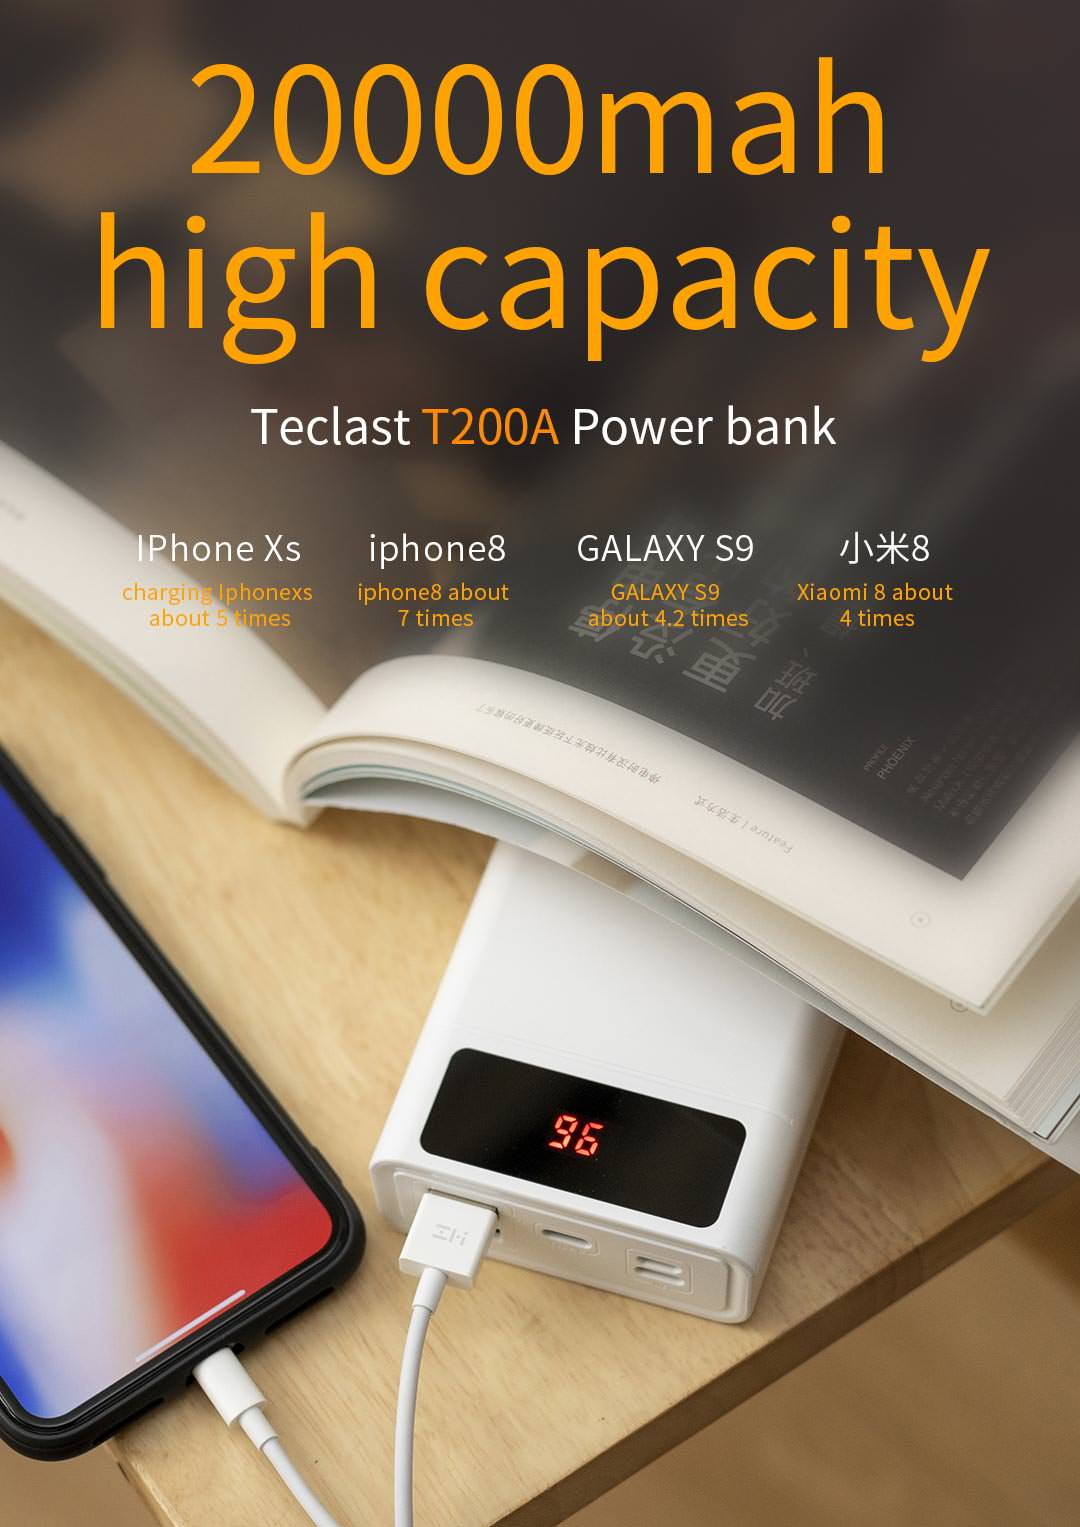 teclast t200a power bank price